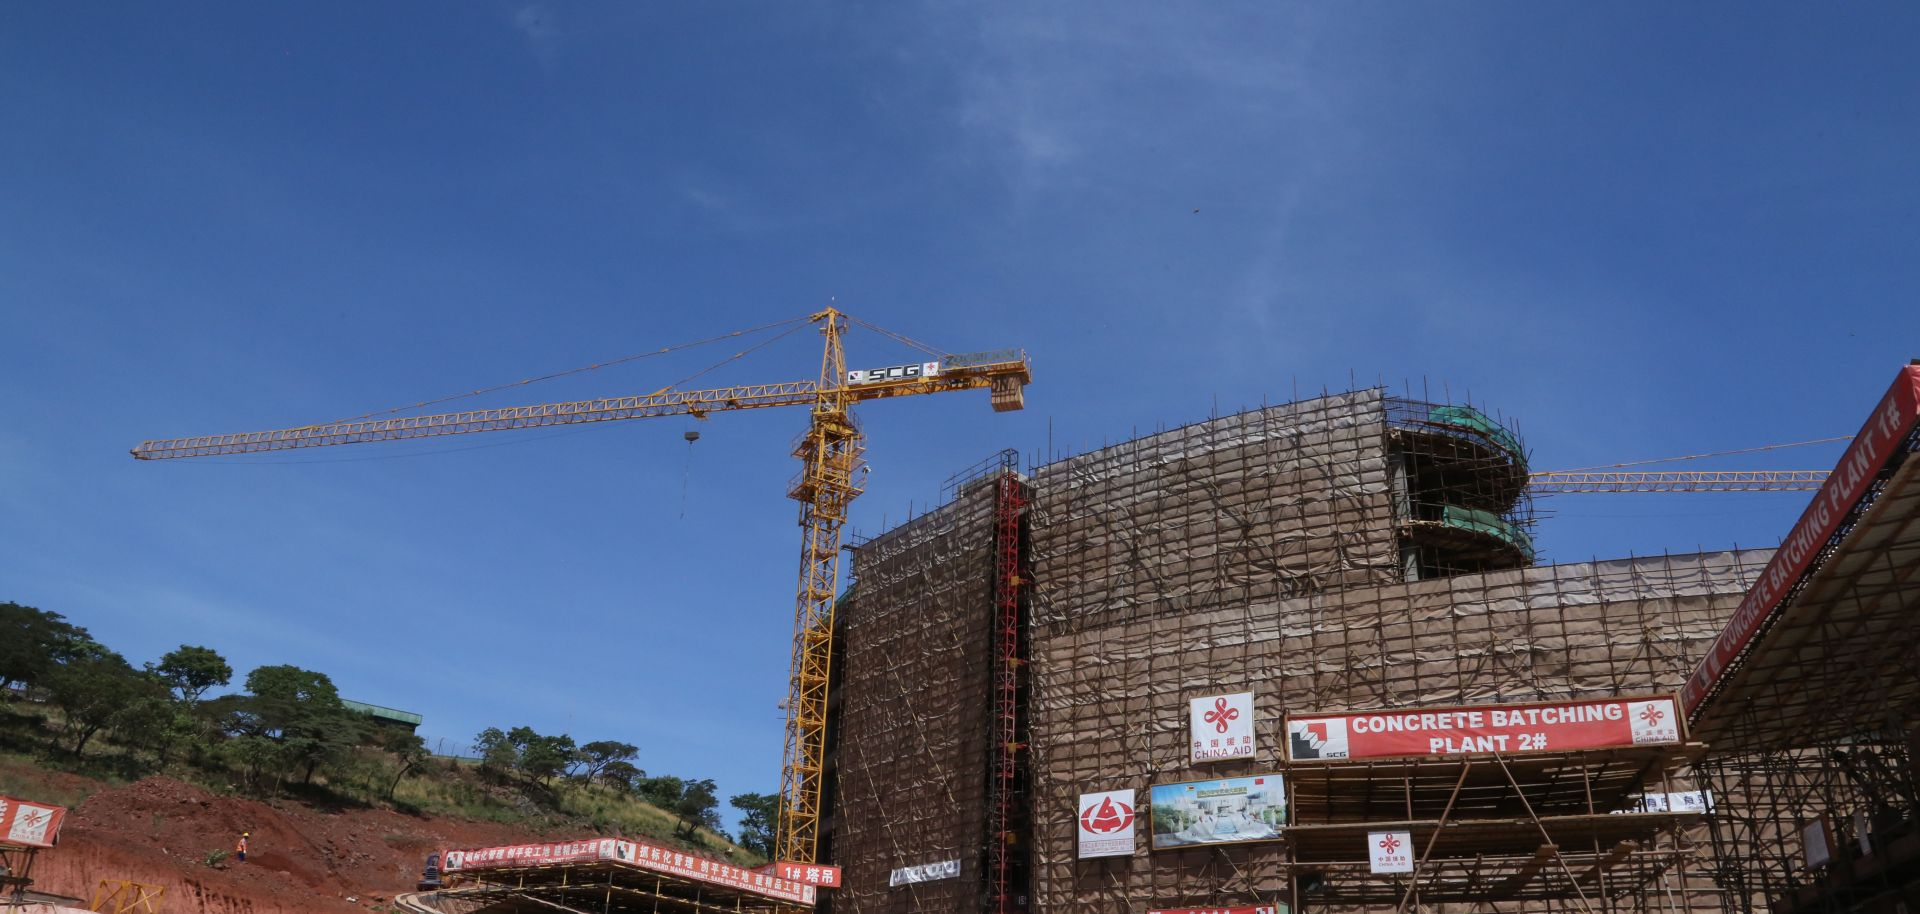 This photo shows the new parliament building in Harare, Zimbabwe, being built by a Chinese construction company.